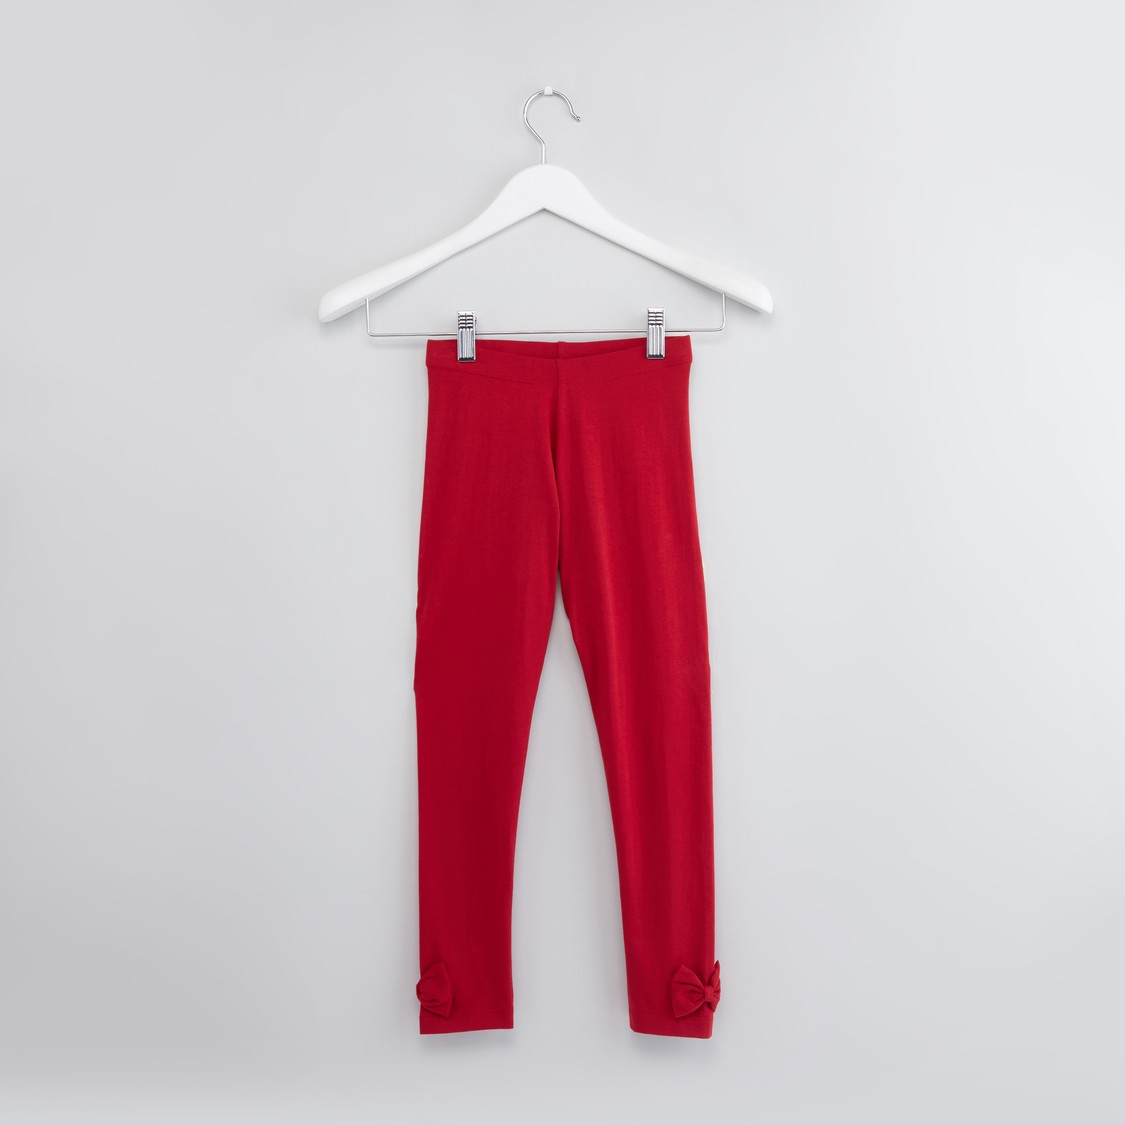 Textured Leggings with Bow Applique and Elasticised Waistband